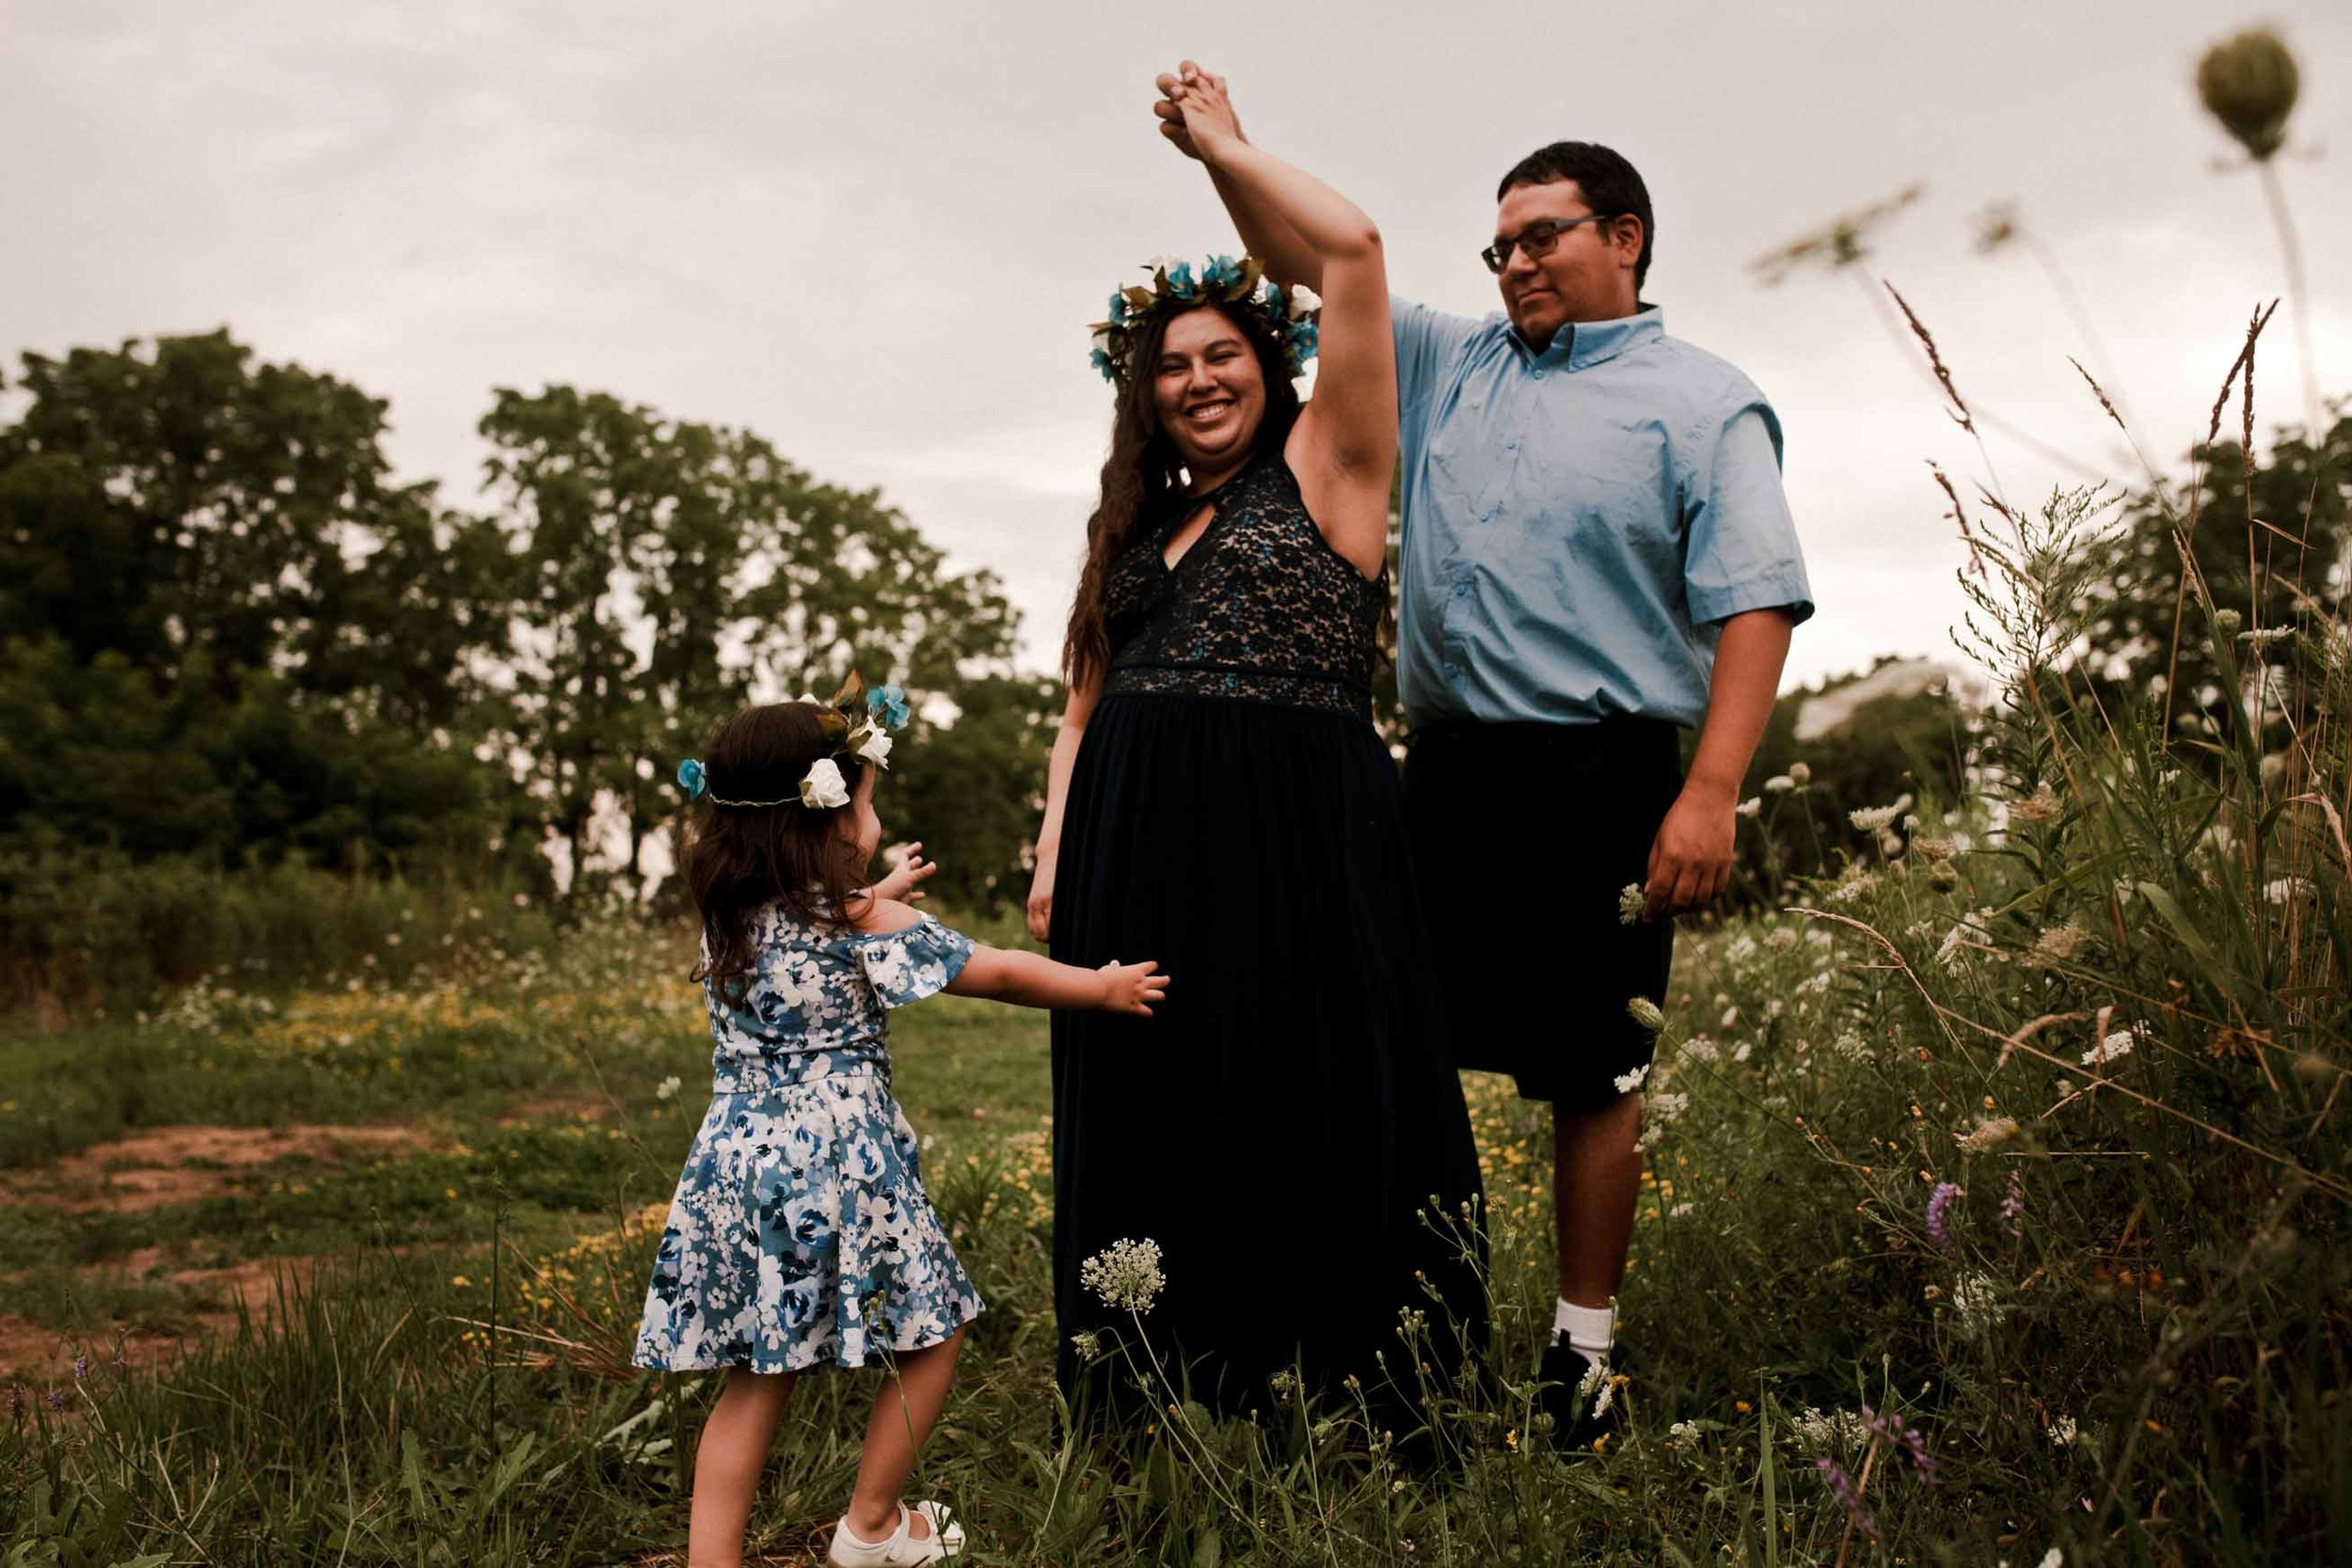 pregnant-mother-spinning-in-field-with-family-hamilton.jpg